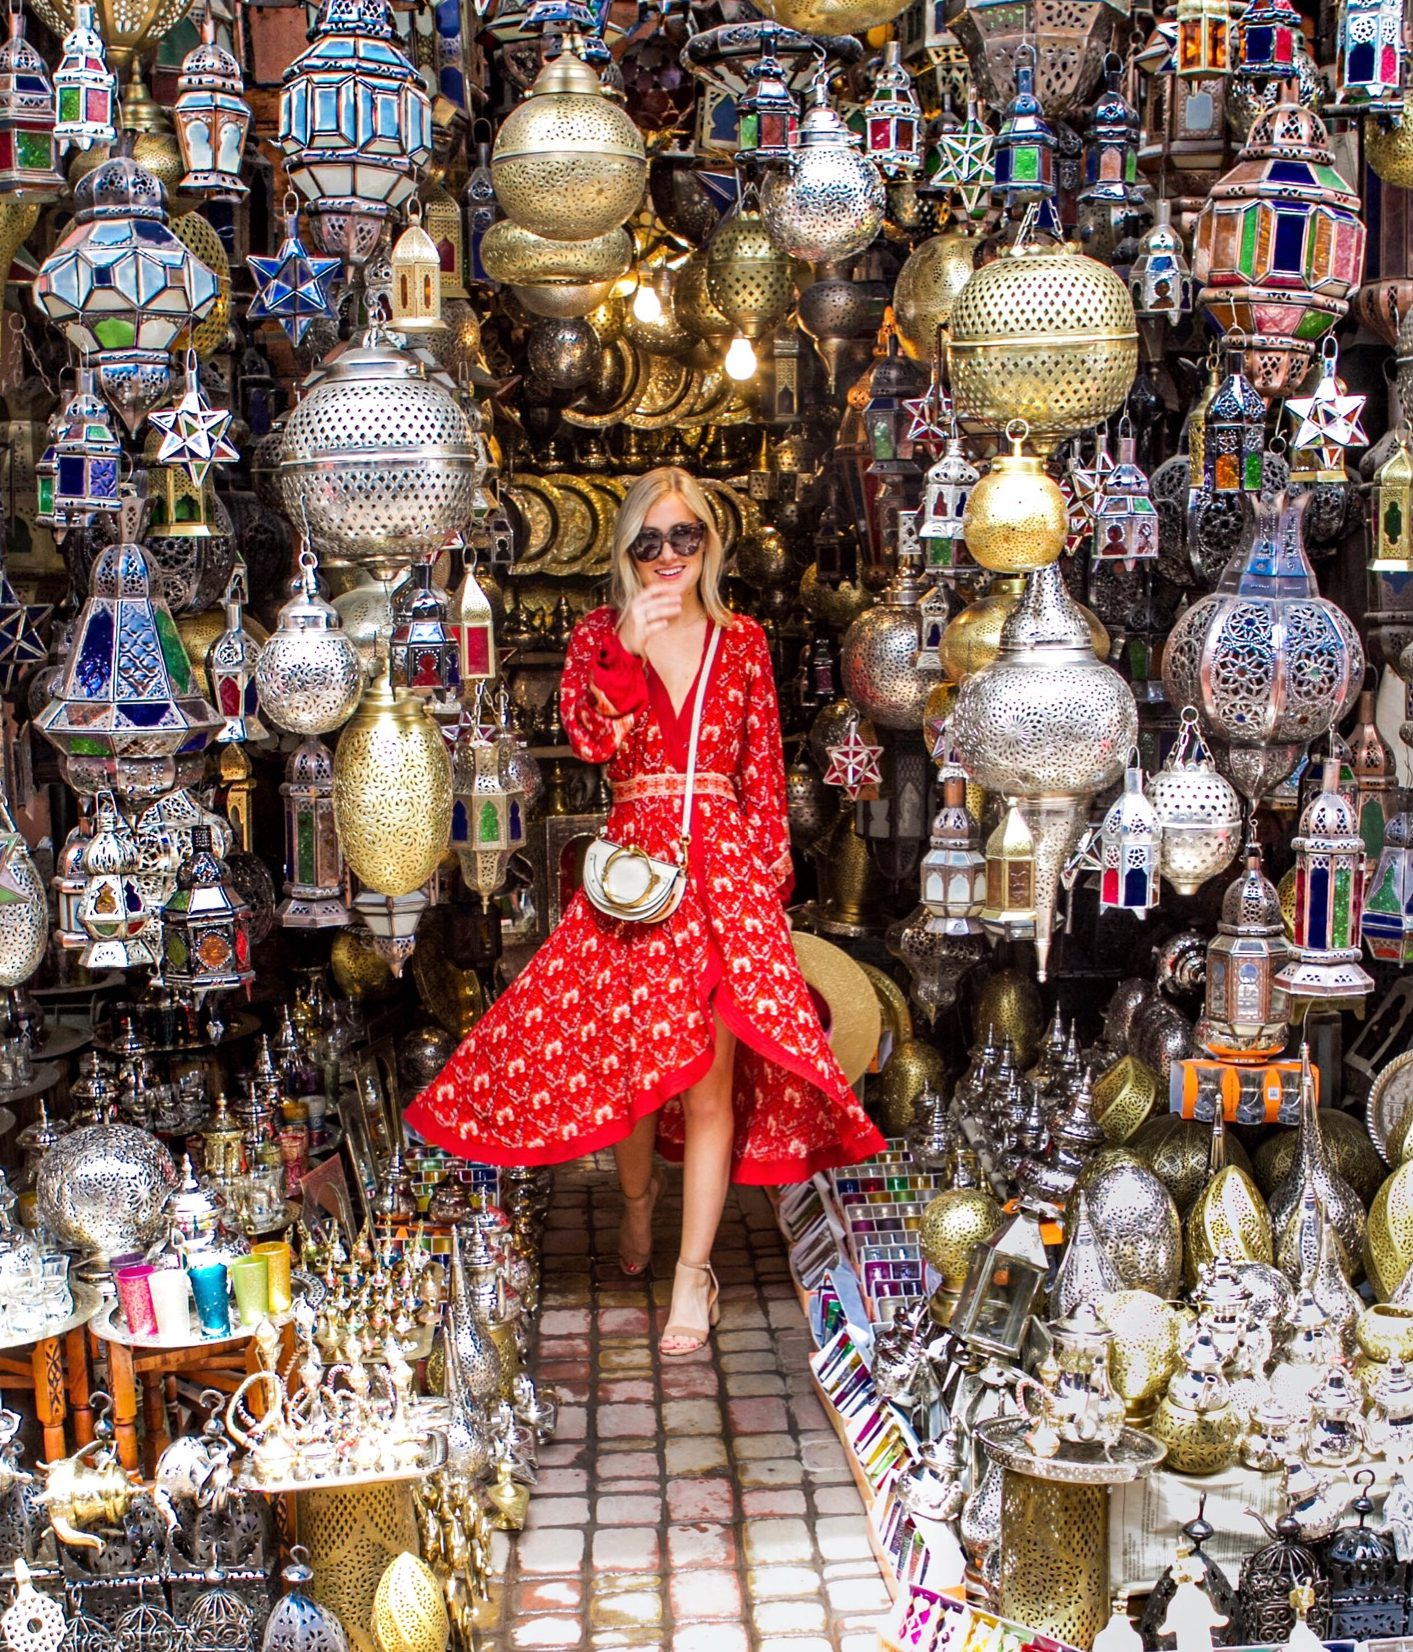 A Day At The Souks